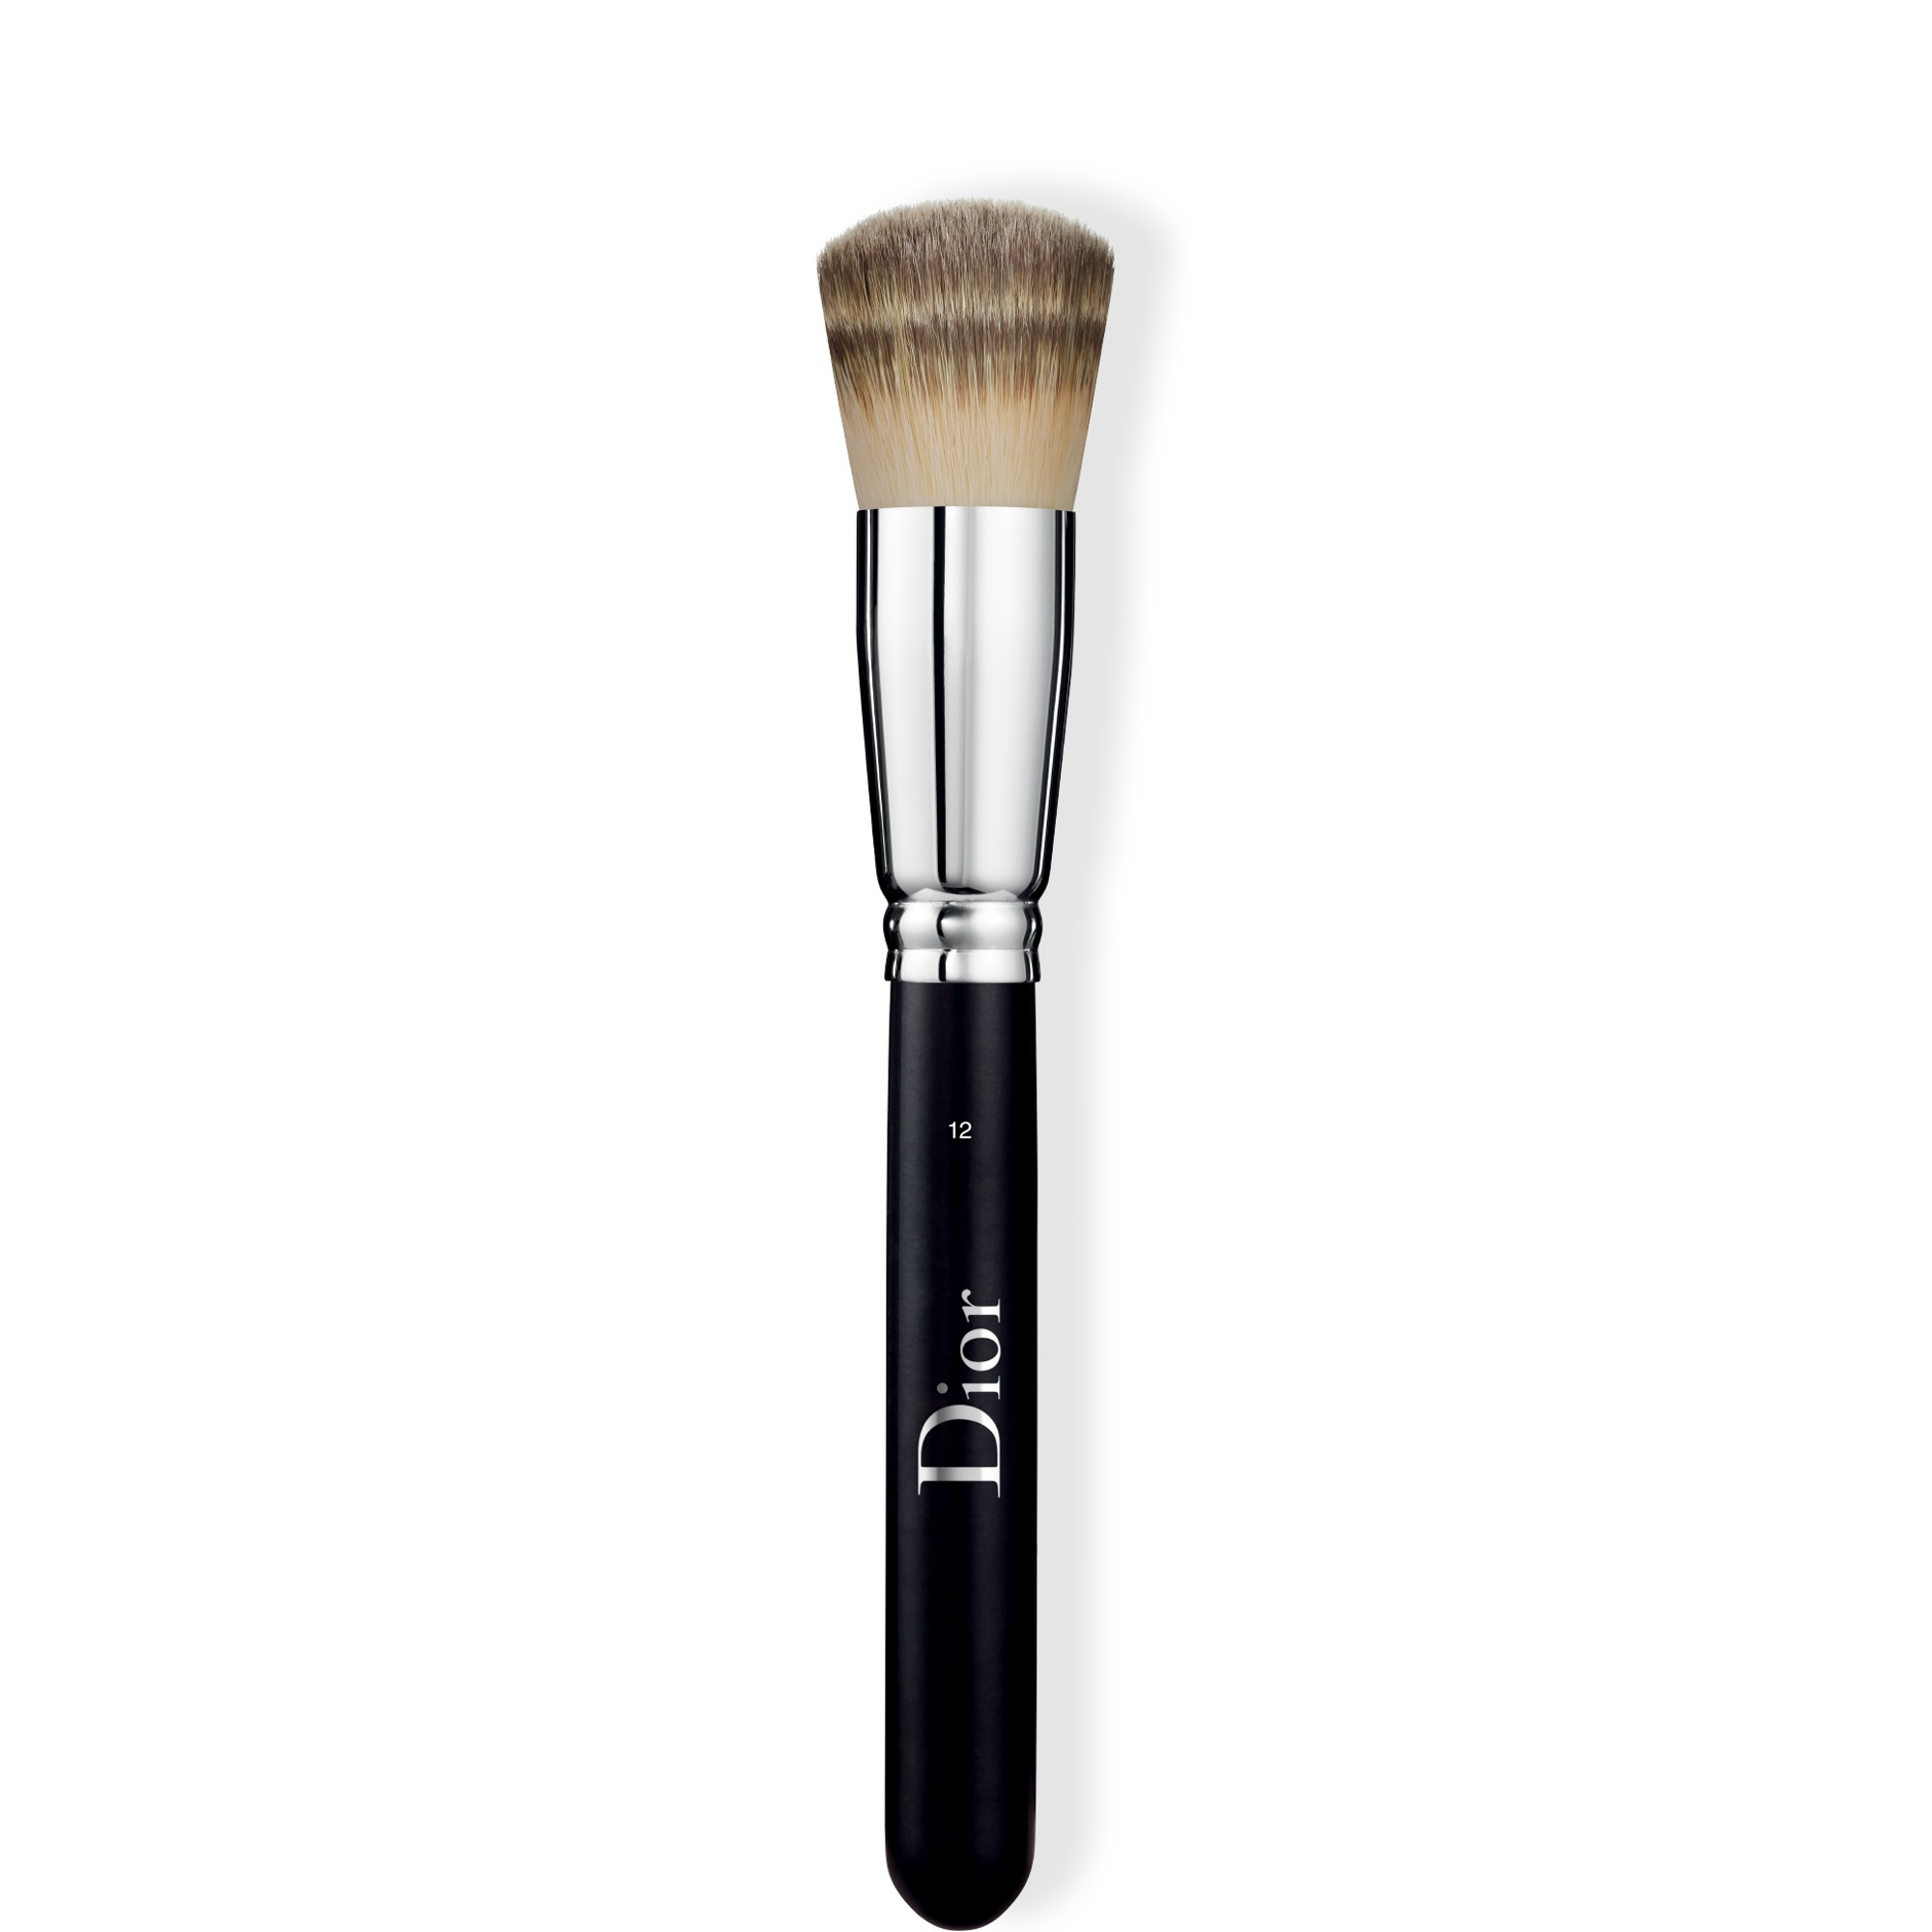 Full Coverage Fluid Foundation Brush N° 12